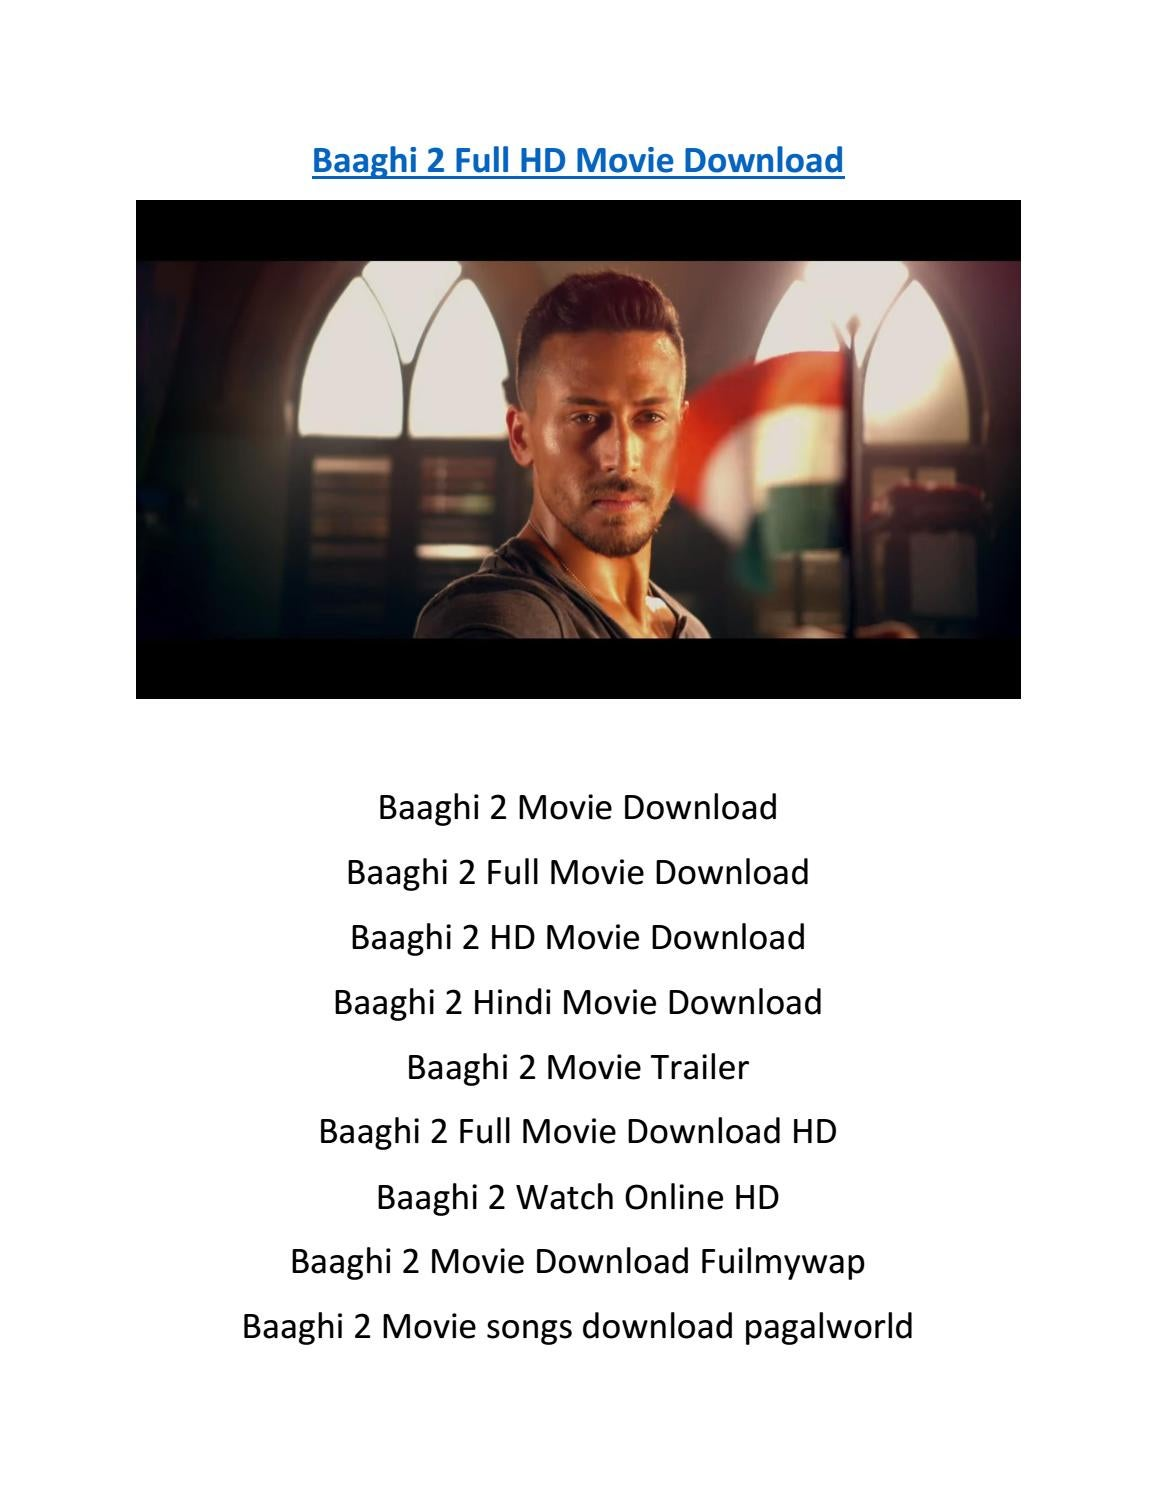 Baaghi 2 Full Hd Movie Download By Baaghi 2 Movie Download Issuu